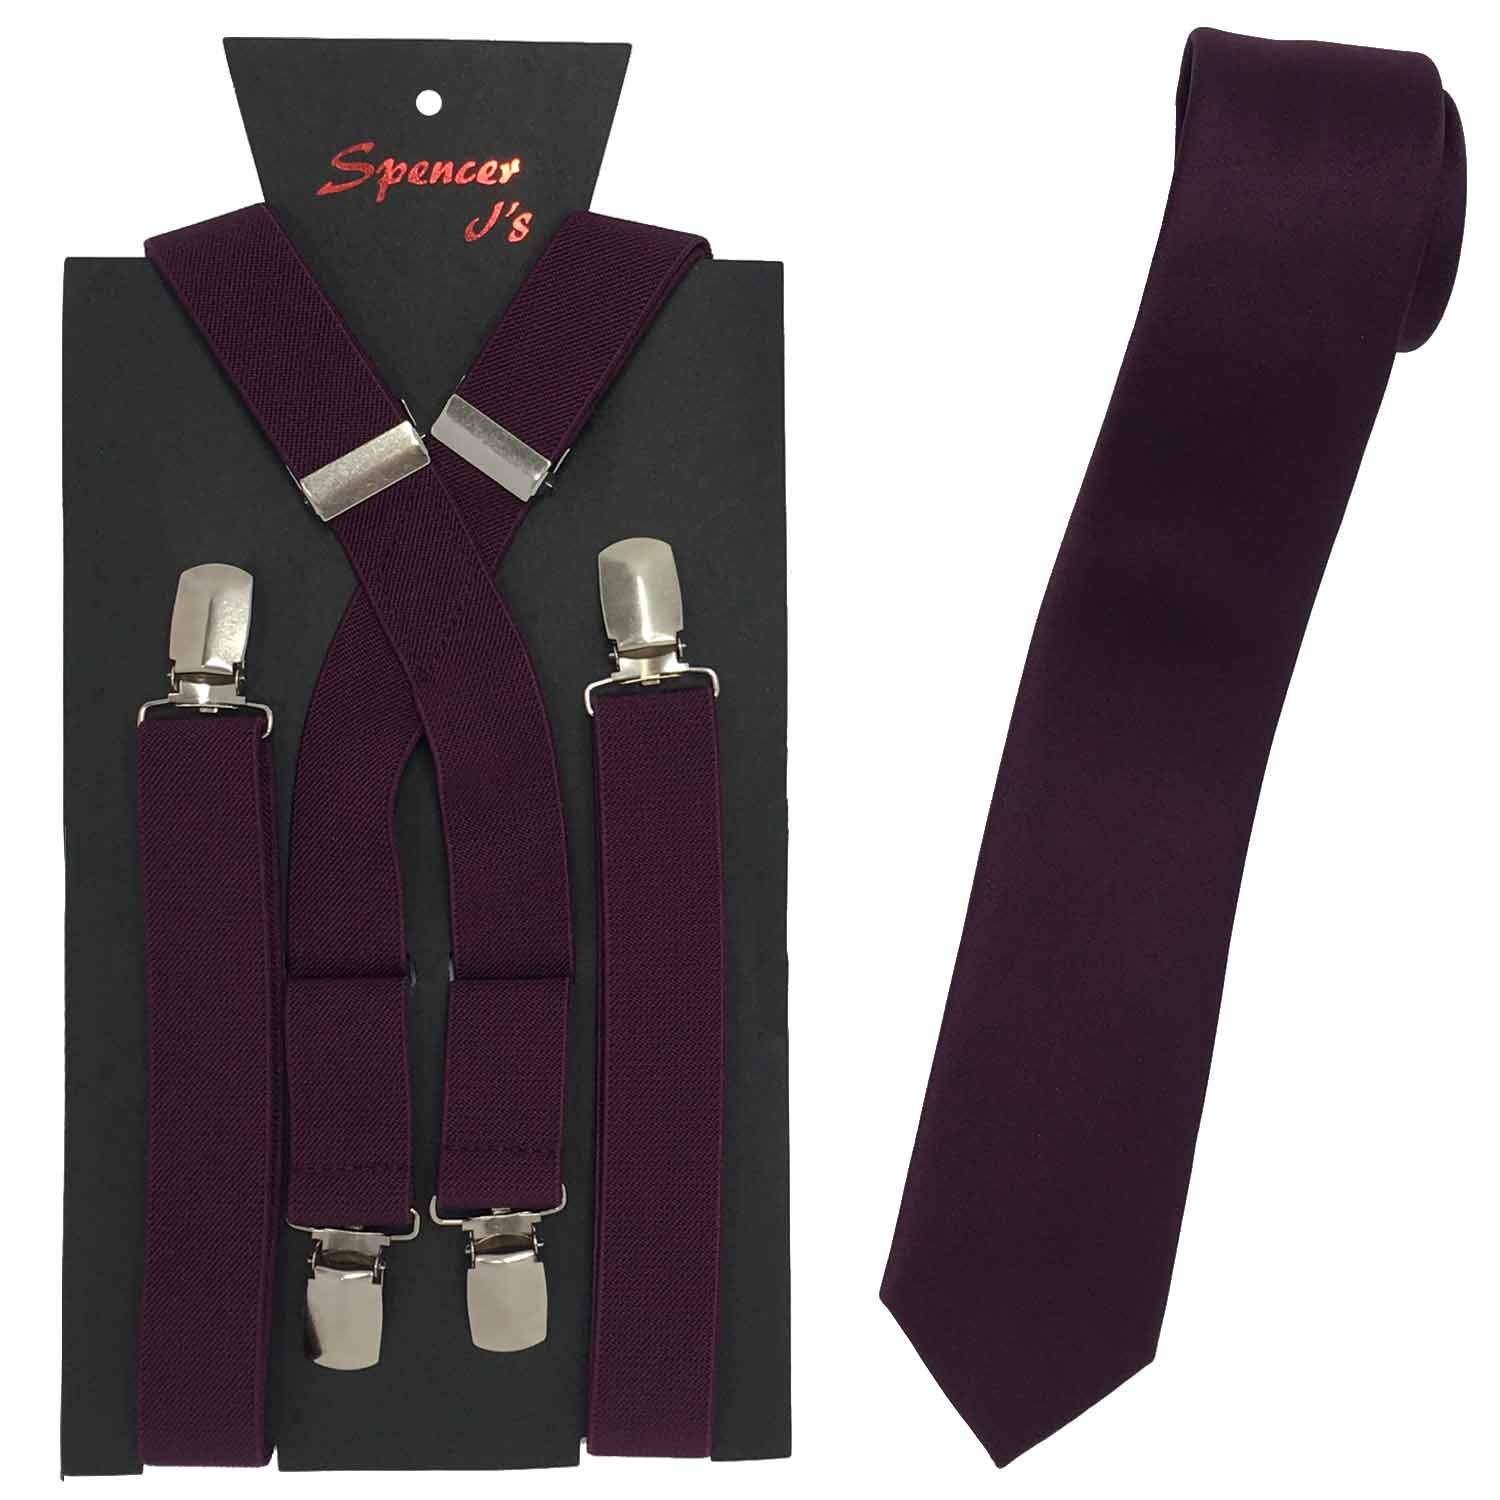 Spencer J's Skinny Neck Tie and Suspender set Variety of Colors (Plum)